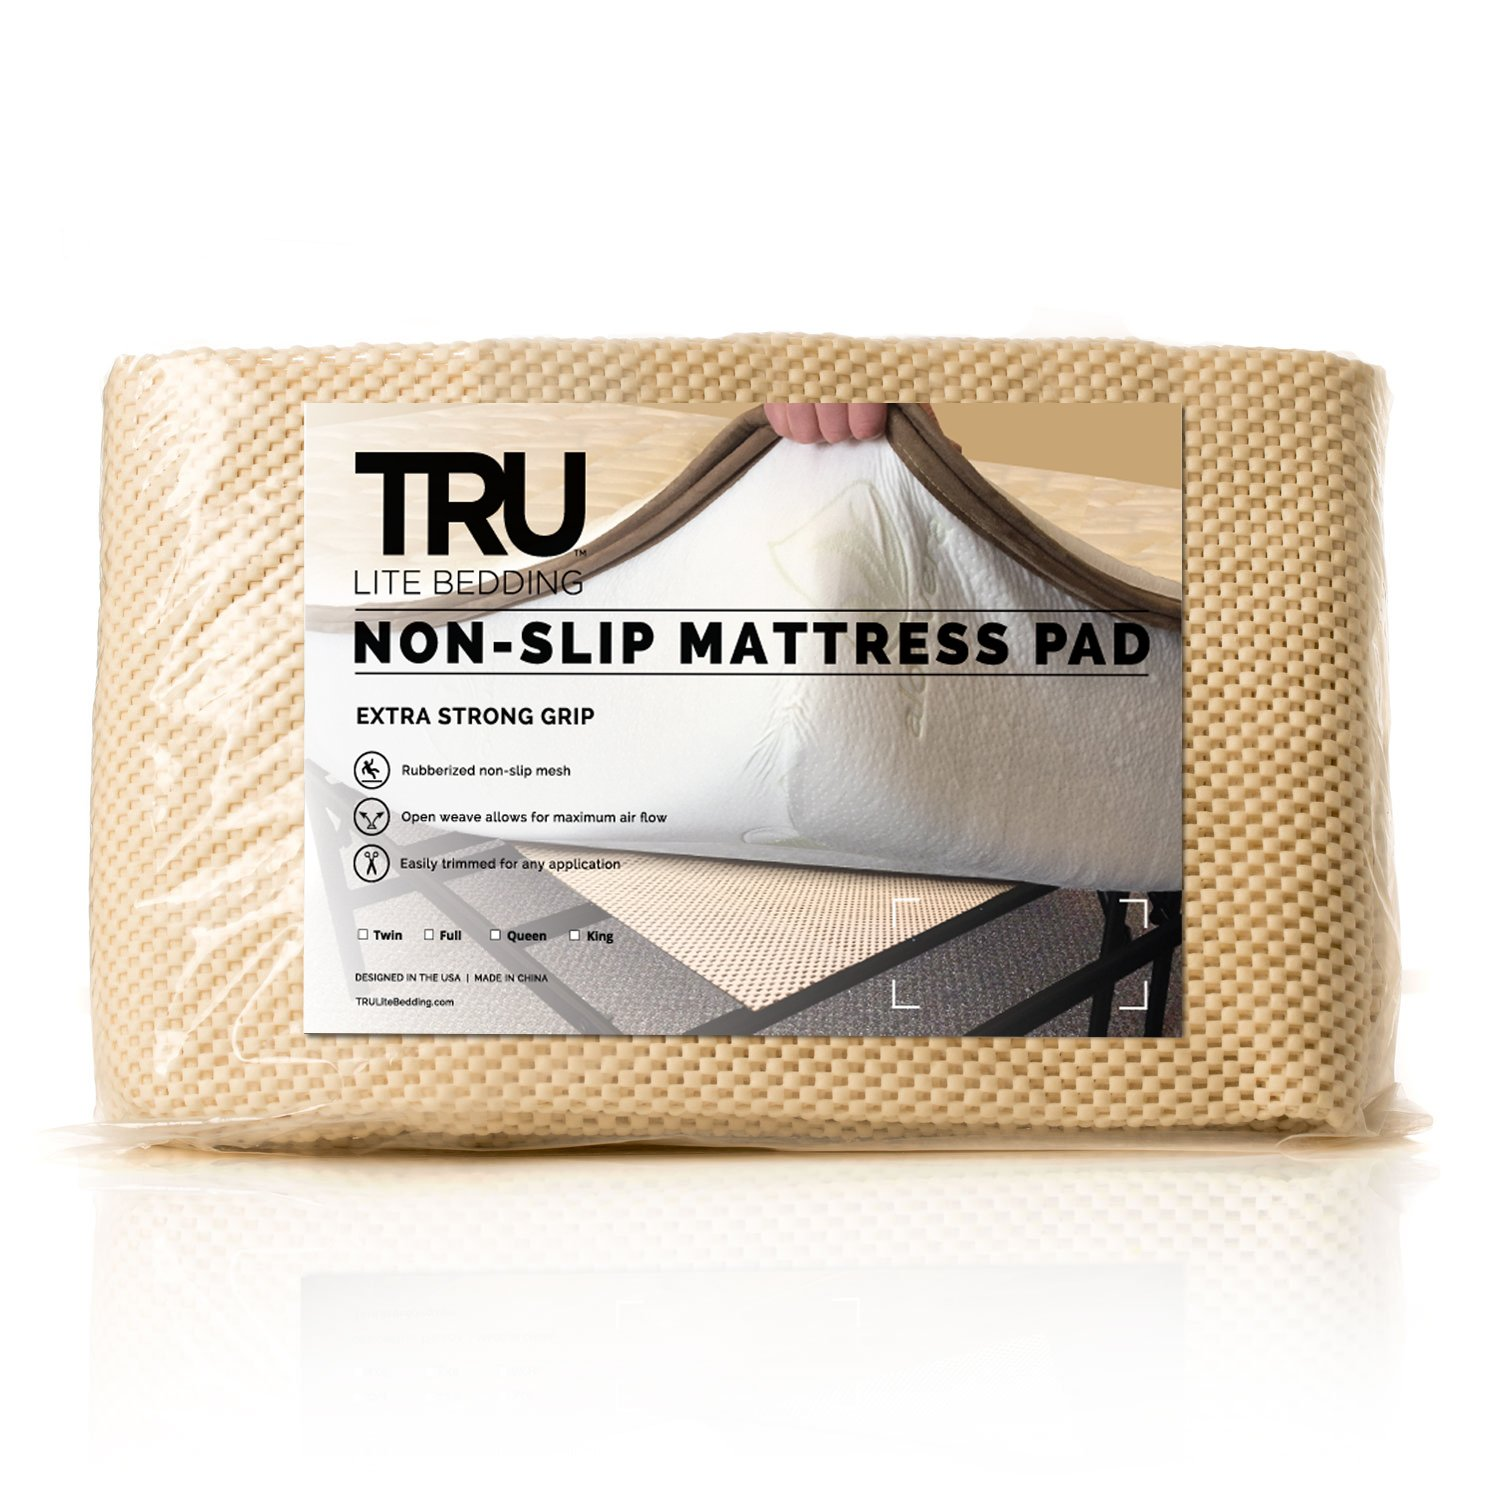 TRU Lite Bedding Extra Strong Non-Slip Mattress Grip Pad - Heavy Duty Rug Gripper- Secures Carpets and Furniture - Easy, Simple Fit - Queen Size - Rug Gripper for 5' x 7' Rug